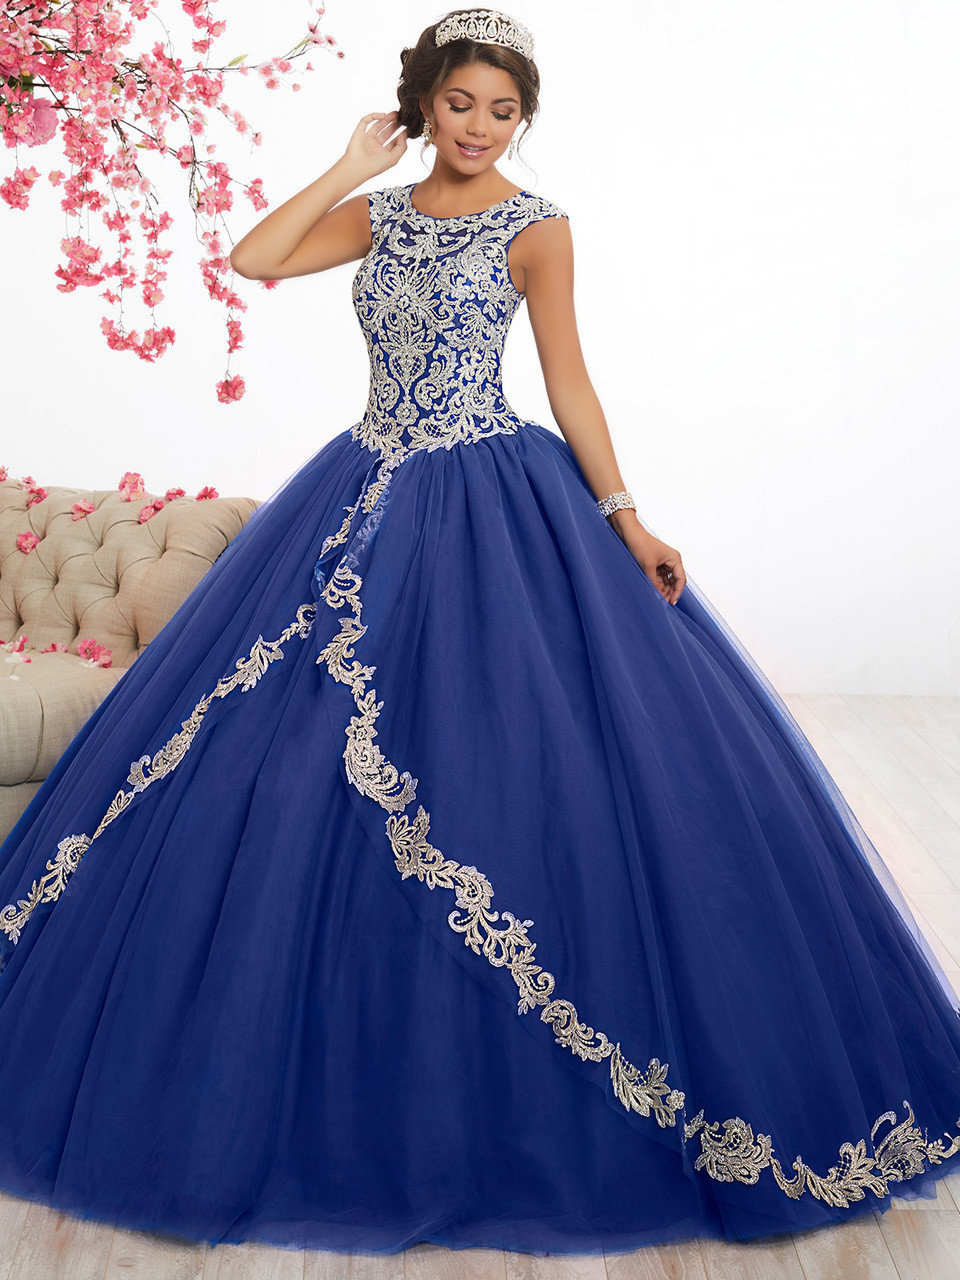 8008006ab91 royal silver quinceanera dress with lace applique by fiesta 56336